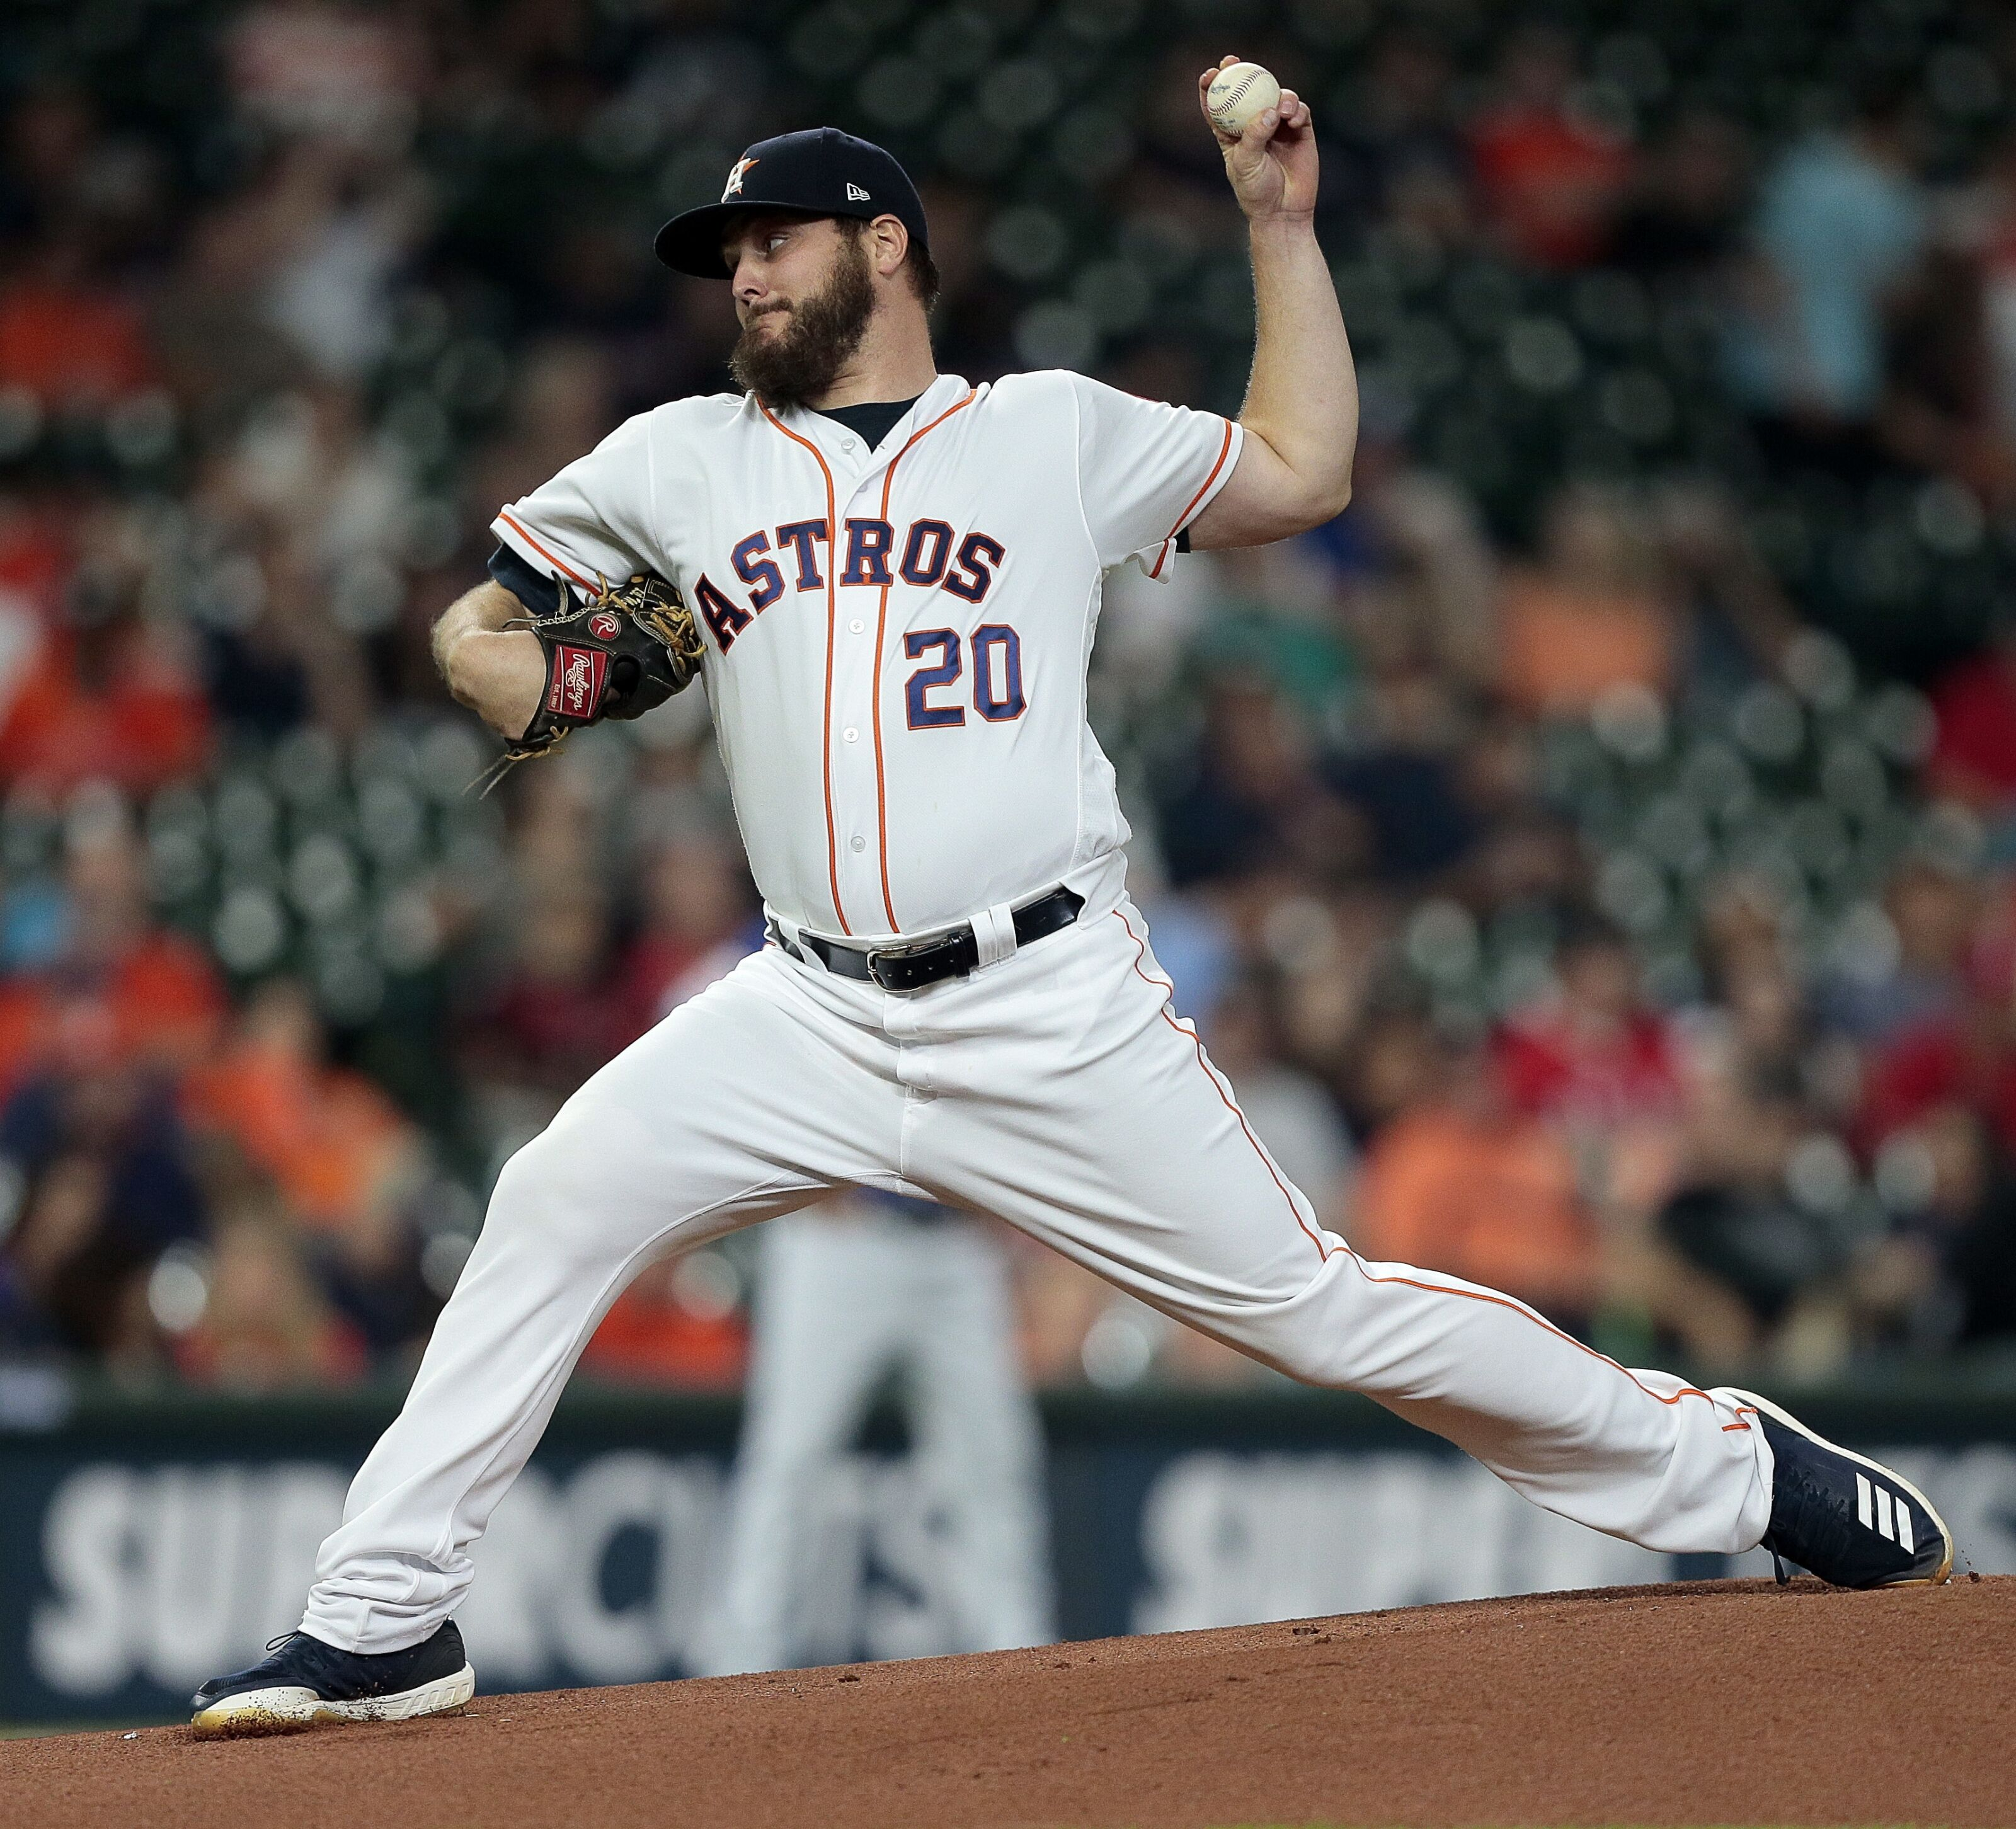 Houston Astros: The Miley Chronicles, Vol. 3: Fastest windup in the West